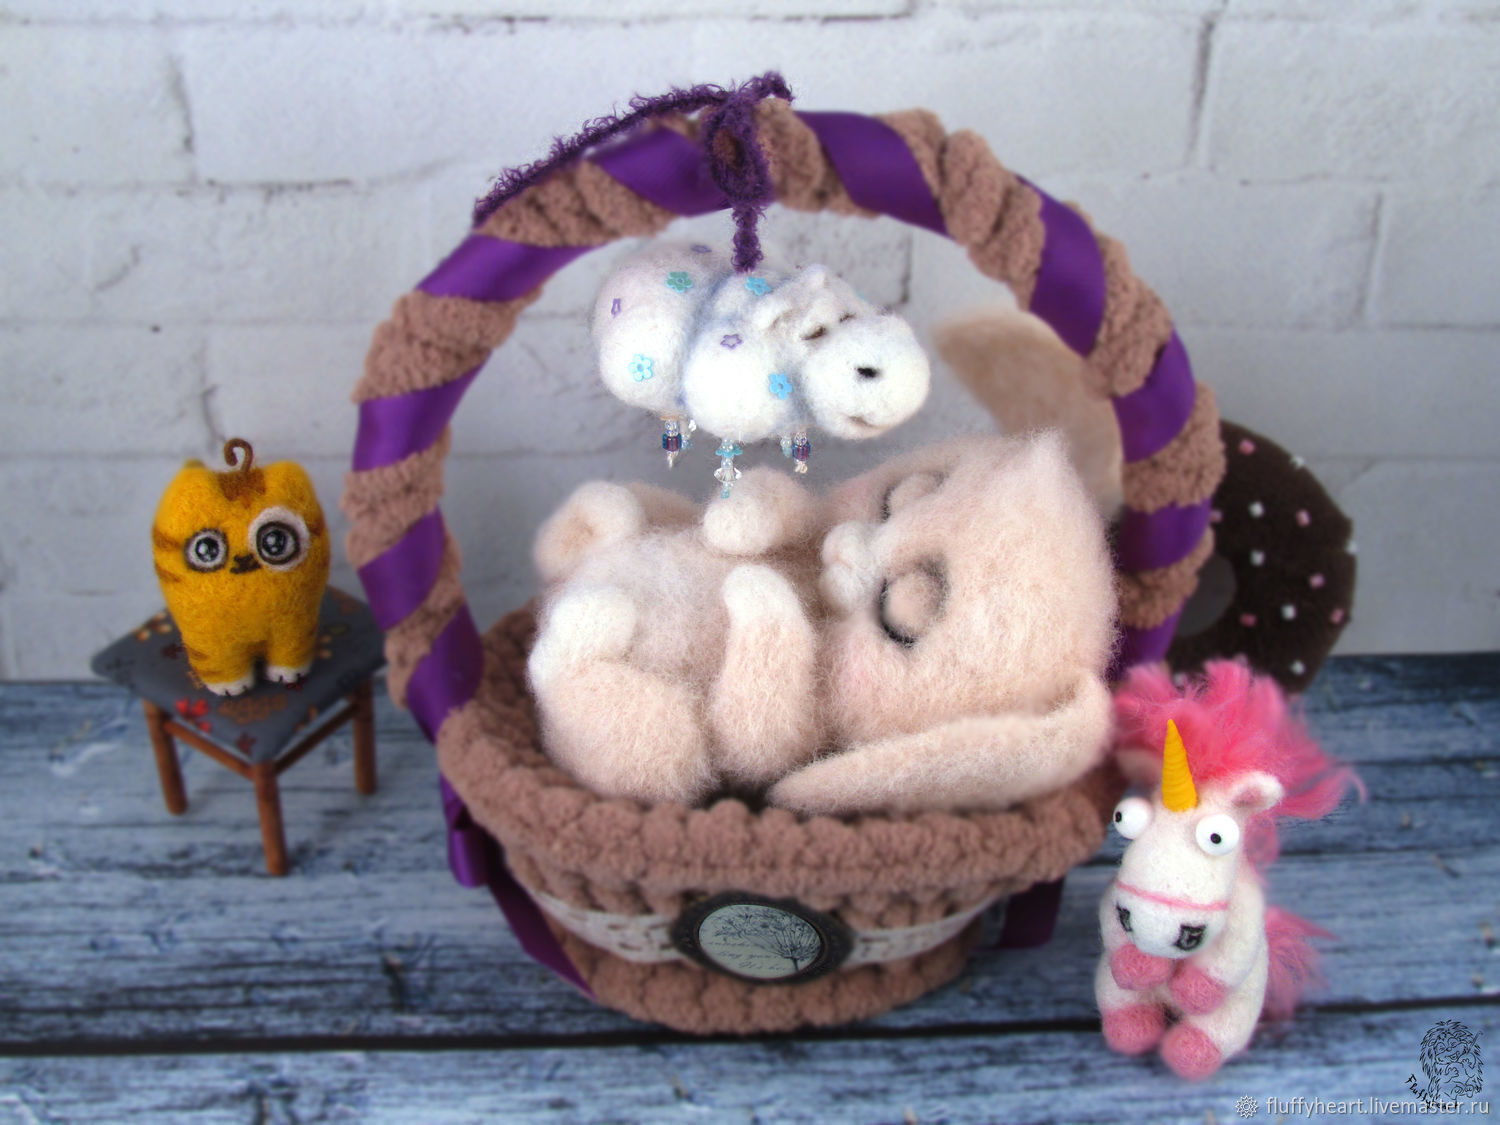 Bunny-an owl in a basket, Stuffed Toys, St. Petersburg,  Фото №1